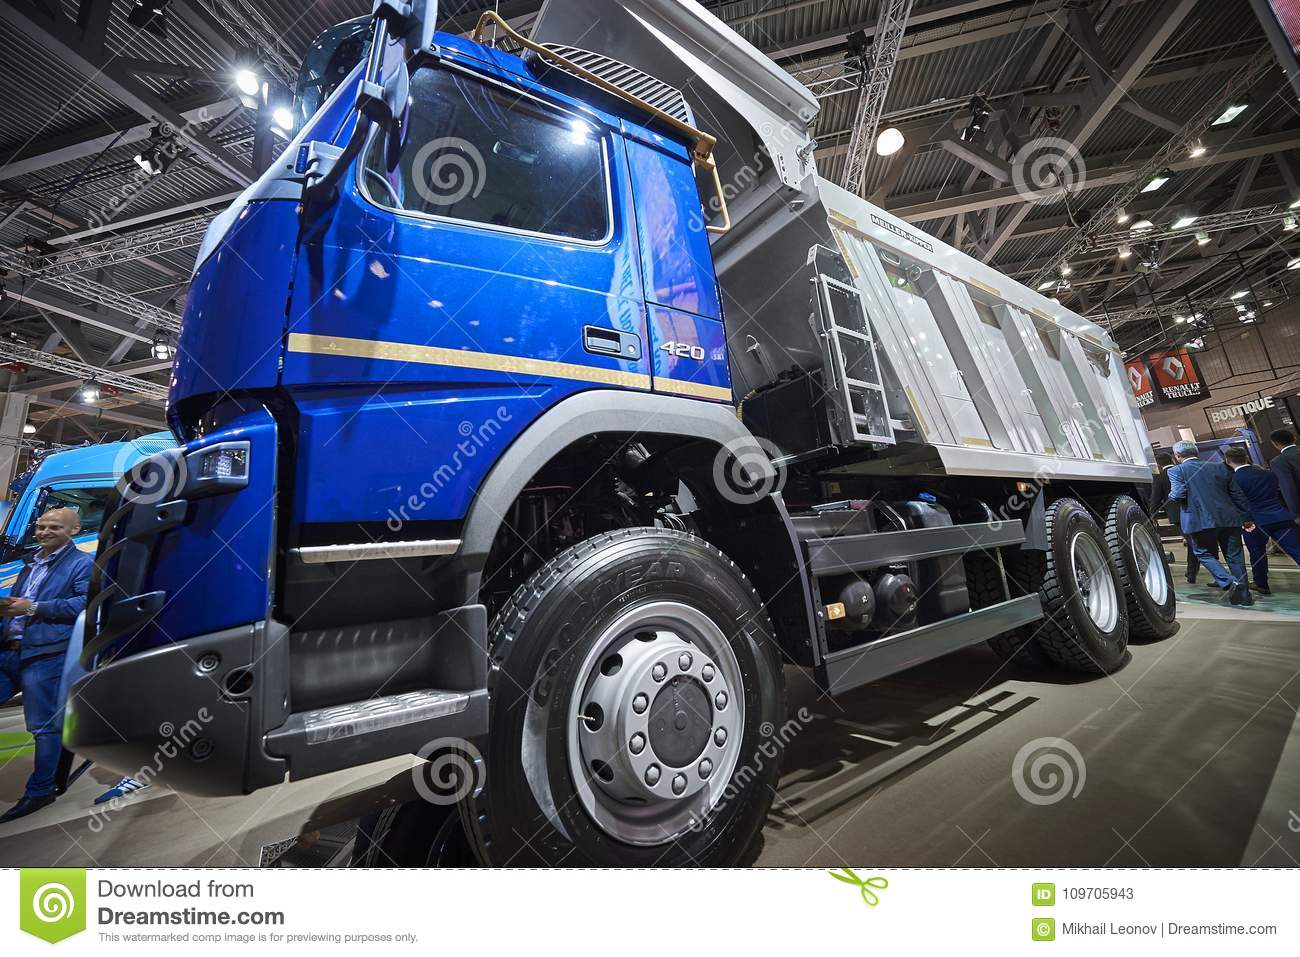 Volvo Exhibition Stand : Moscow sep close up view on volvo dump truck exhibit on